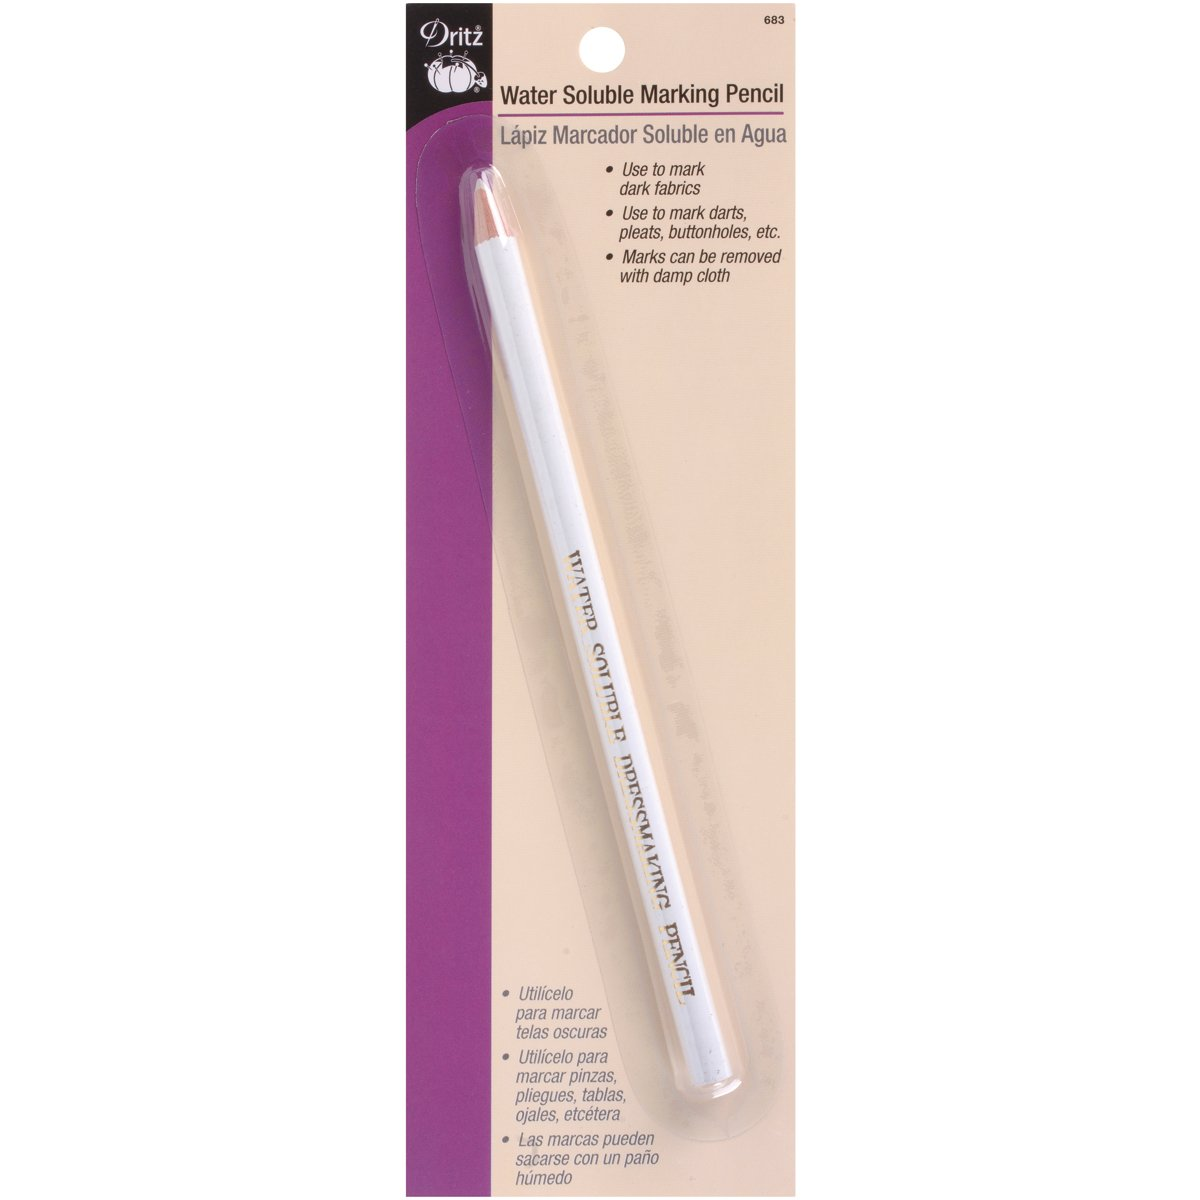 Dritz Marking Pencil White Water Soluble Prym Consumer USA 683